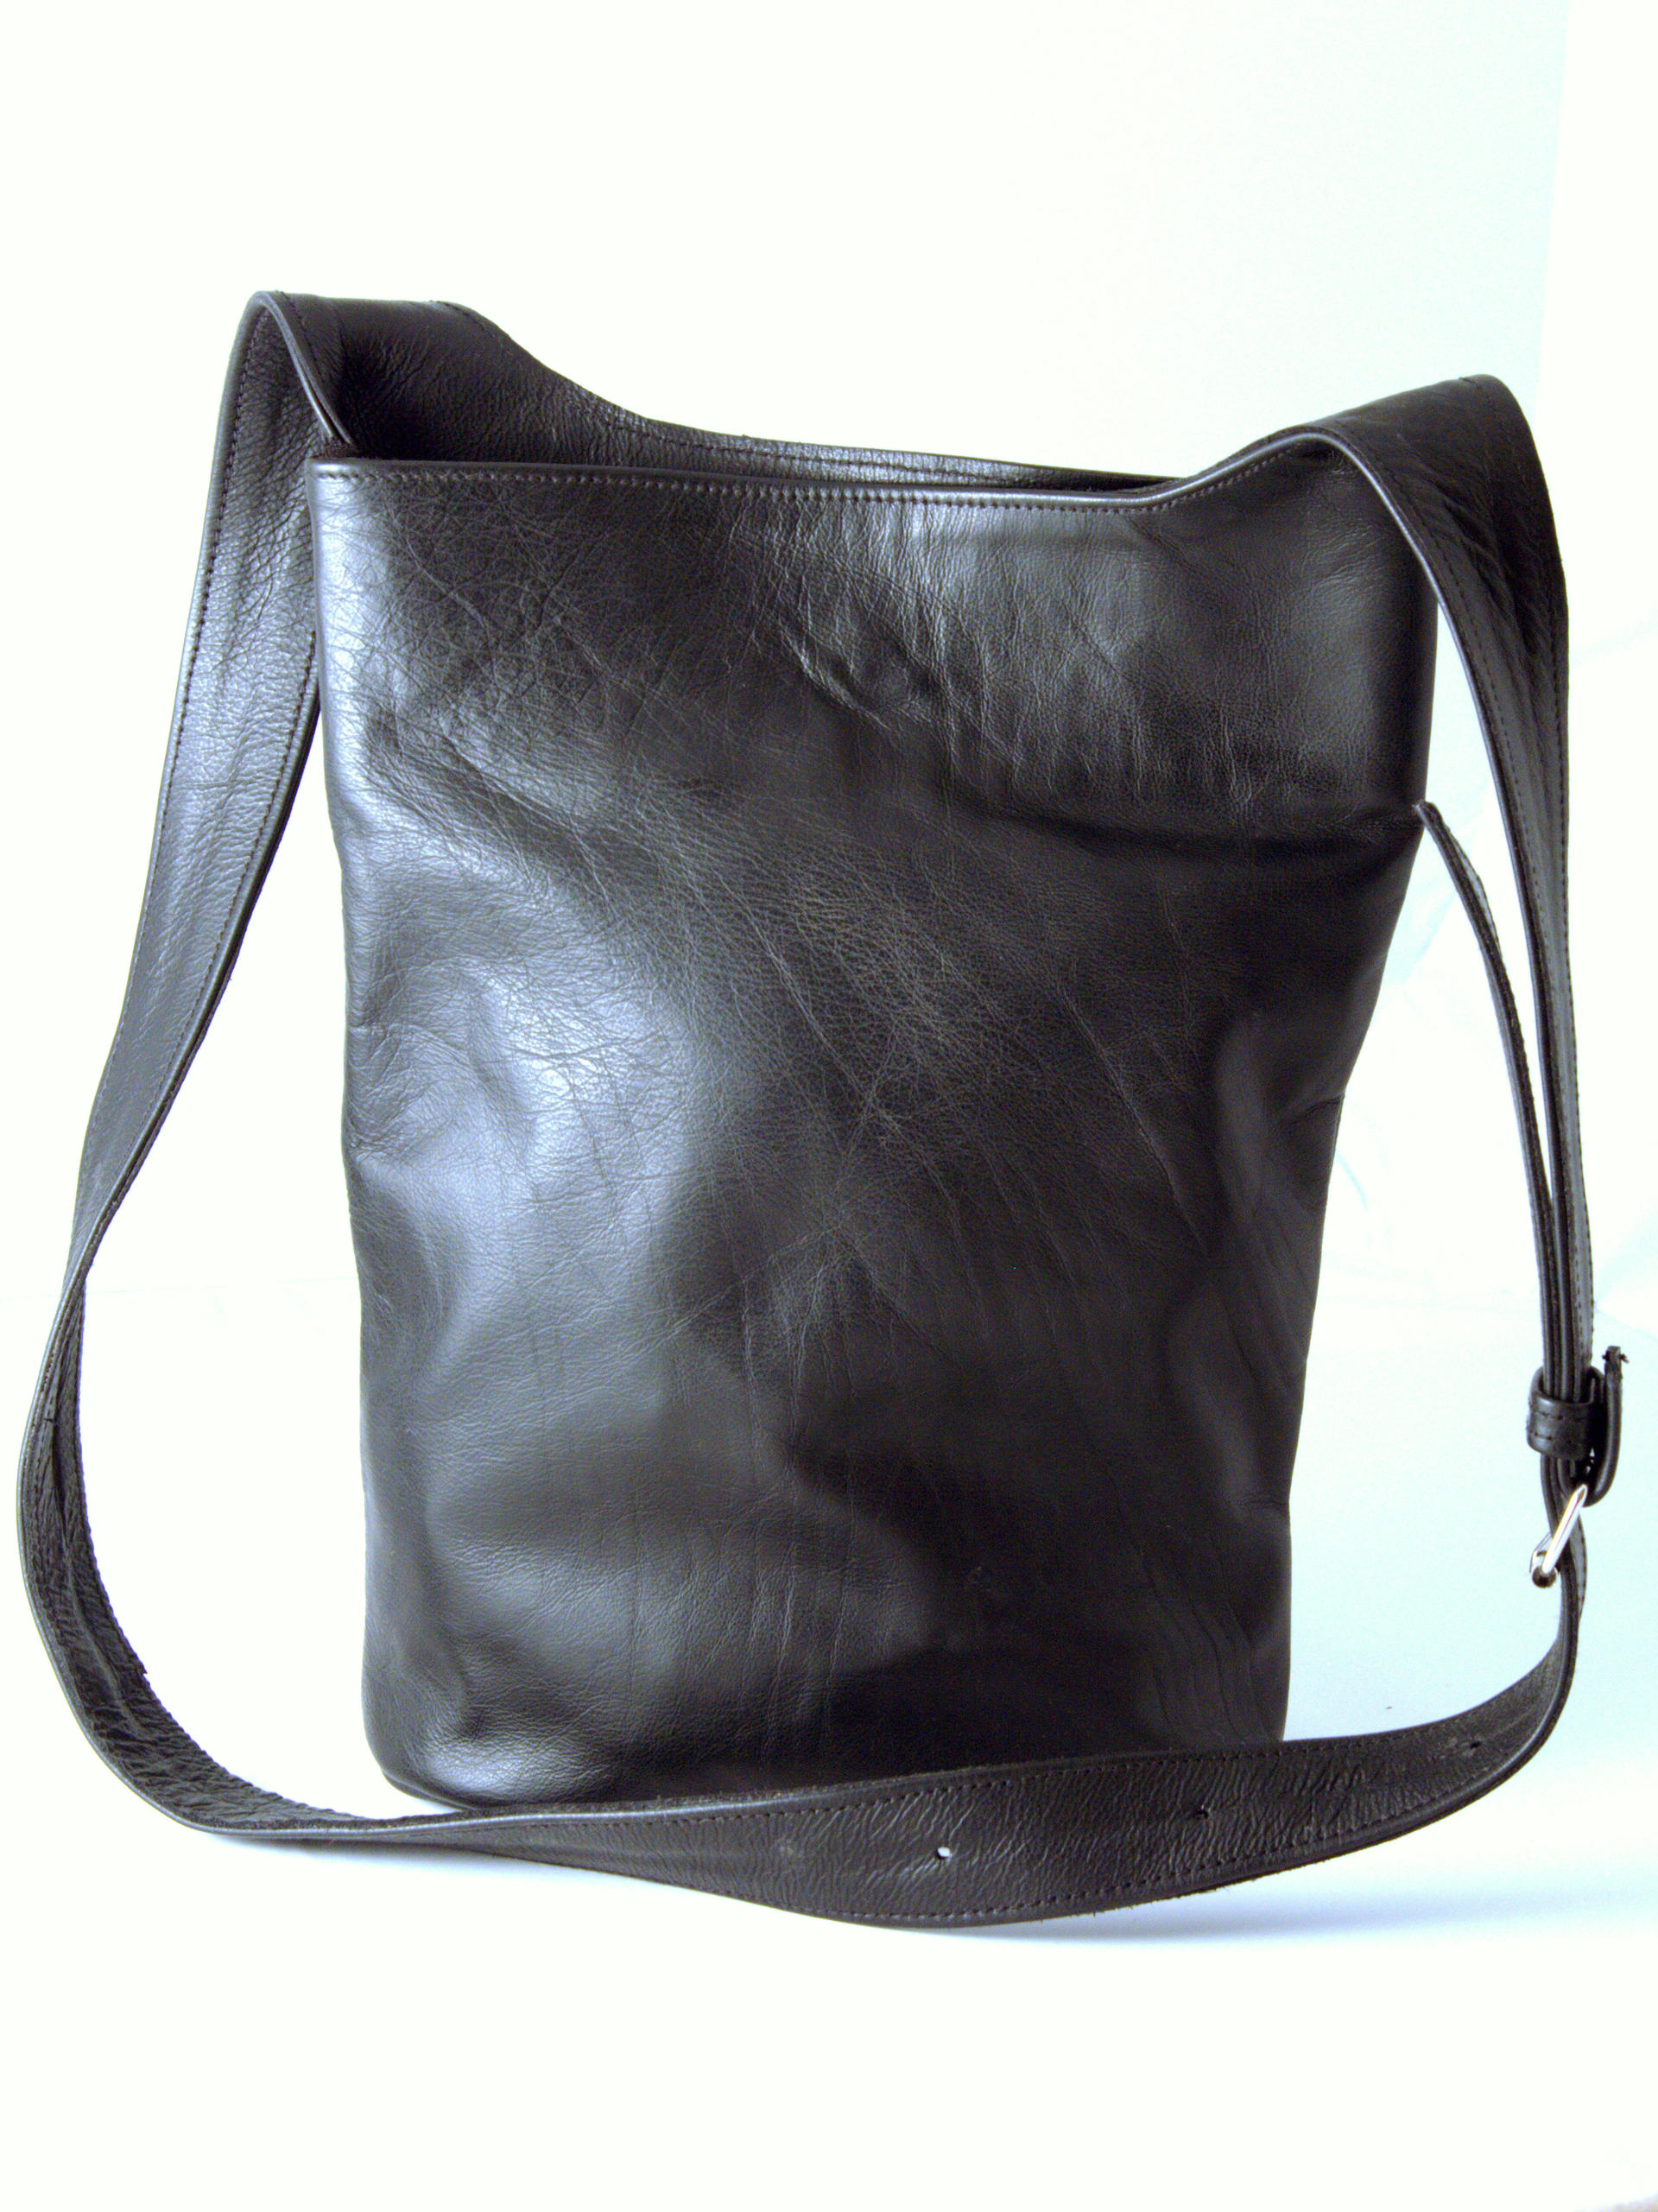 Gundara - Summer Time - genuine leather - fair trade bag from Afghanistan - black